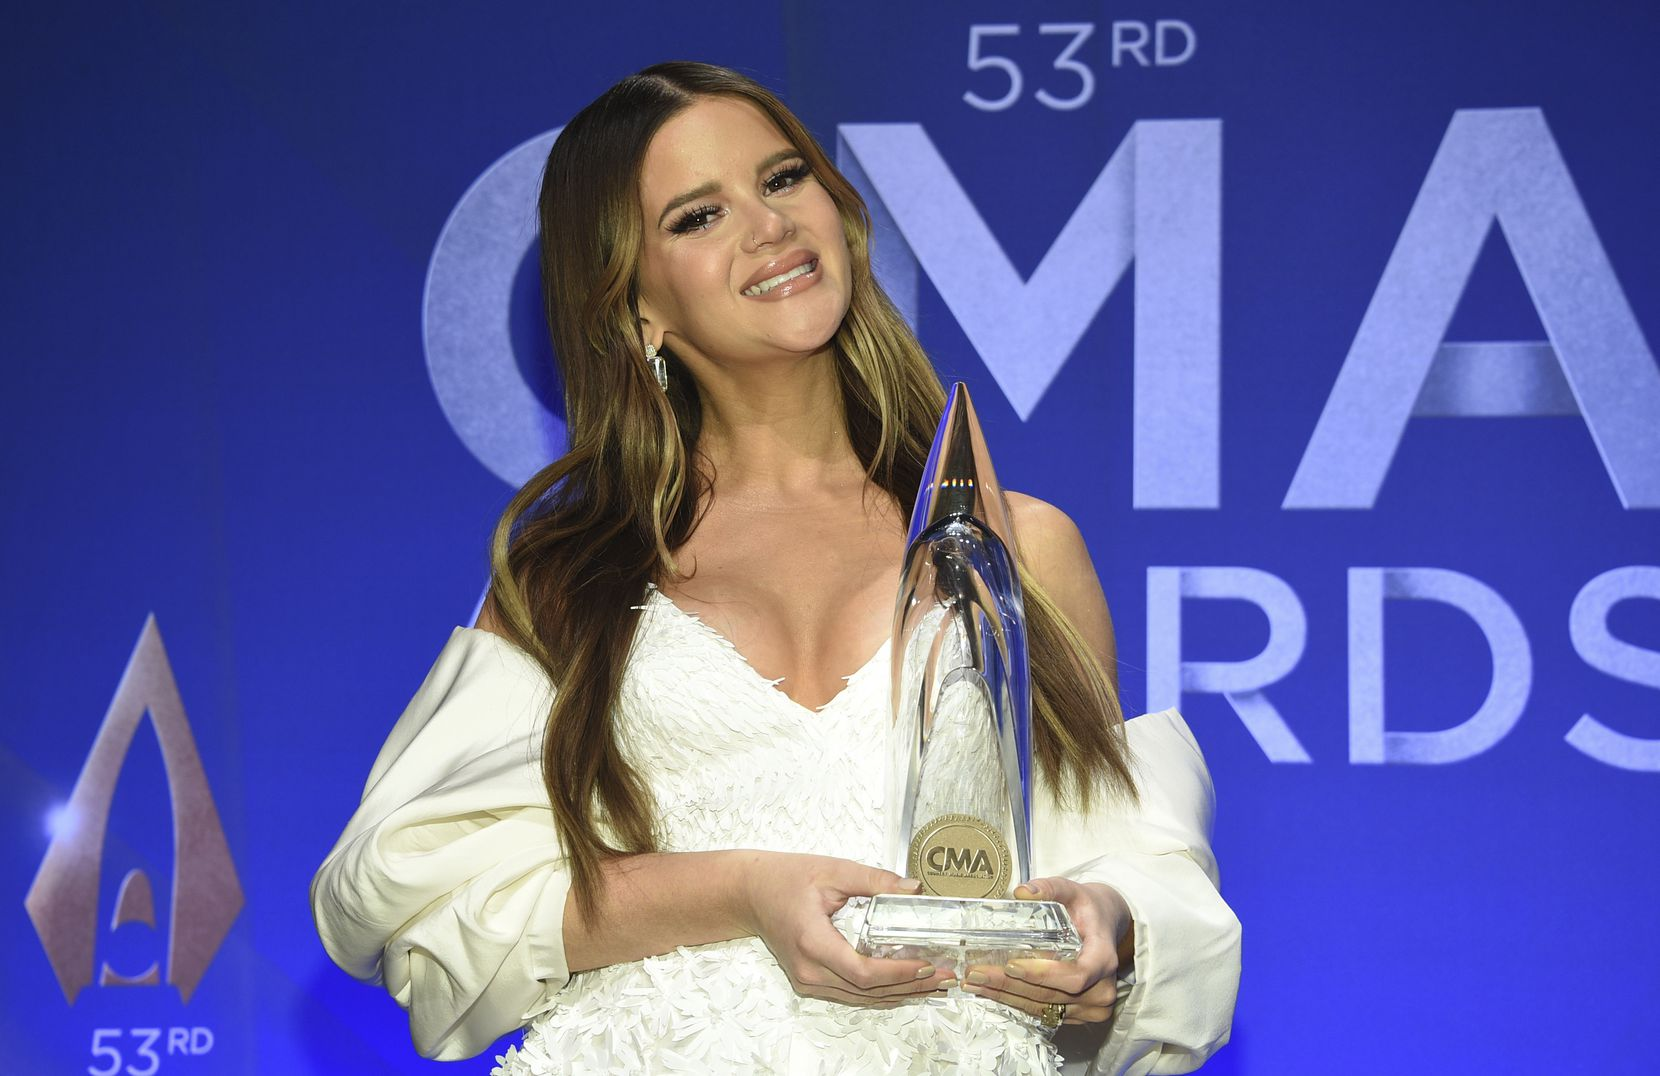 Singer-songwriter Maren Morris poses in the press room with the album of the year award at the 53rd annual CMA Awards at Bridgestone Arena on Wednesday, Nov. 13, 2019, in Nashville, Tenn.